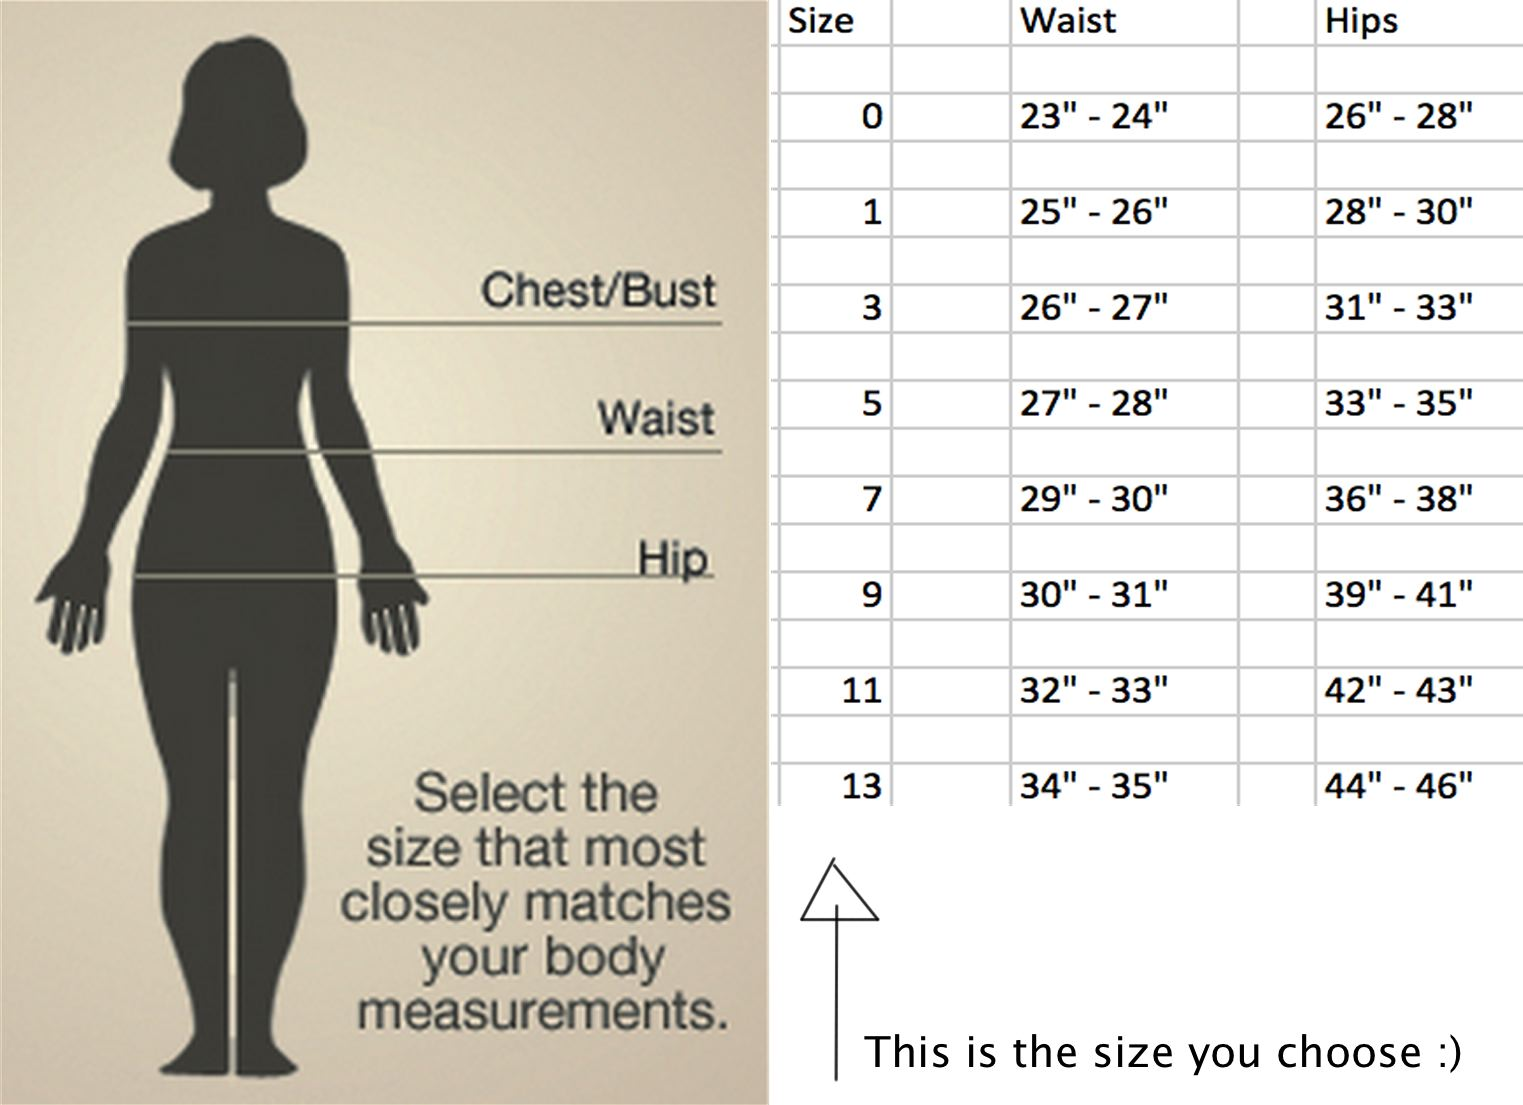 Measuring Waist Size. As every woman has different curves, it's important to have a standard method for accurately measuring waist circumference. According to Harvard Medical School, the official landmark for placing the tape measure is slightly above the hip bone at the level of your belly sofltappreciate.tkd: Jun 17,